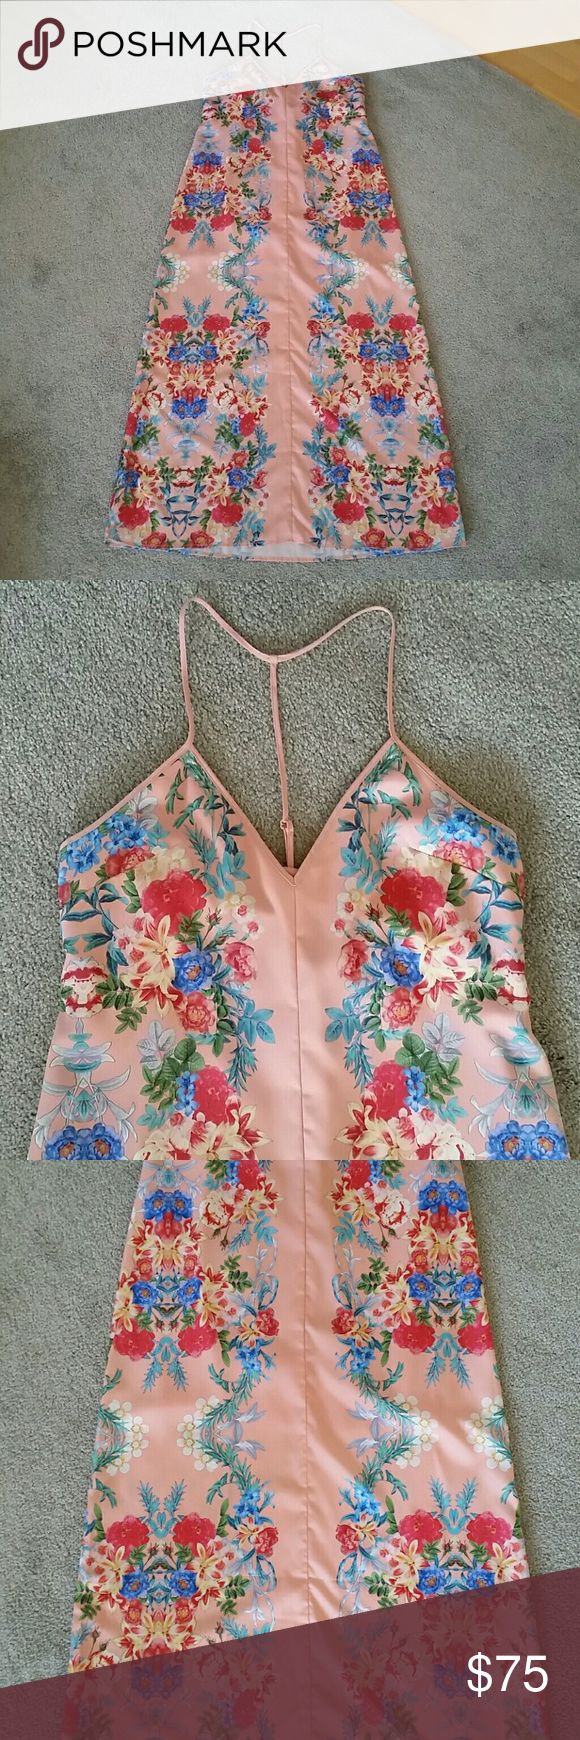 KEEPSAKE the Label Floral Peach Maxi Dress - M Like new KEEPSAKE the Label maxi. No rips, stains, holes, or wear. Pink/peach color with vintage-style flowers up the sides. Hangs a bit lose at the top (no structure). Mini lining (see pic 7). KEEPSAKE the Label Dresses Maxi